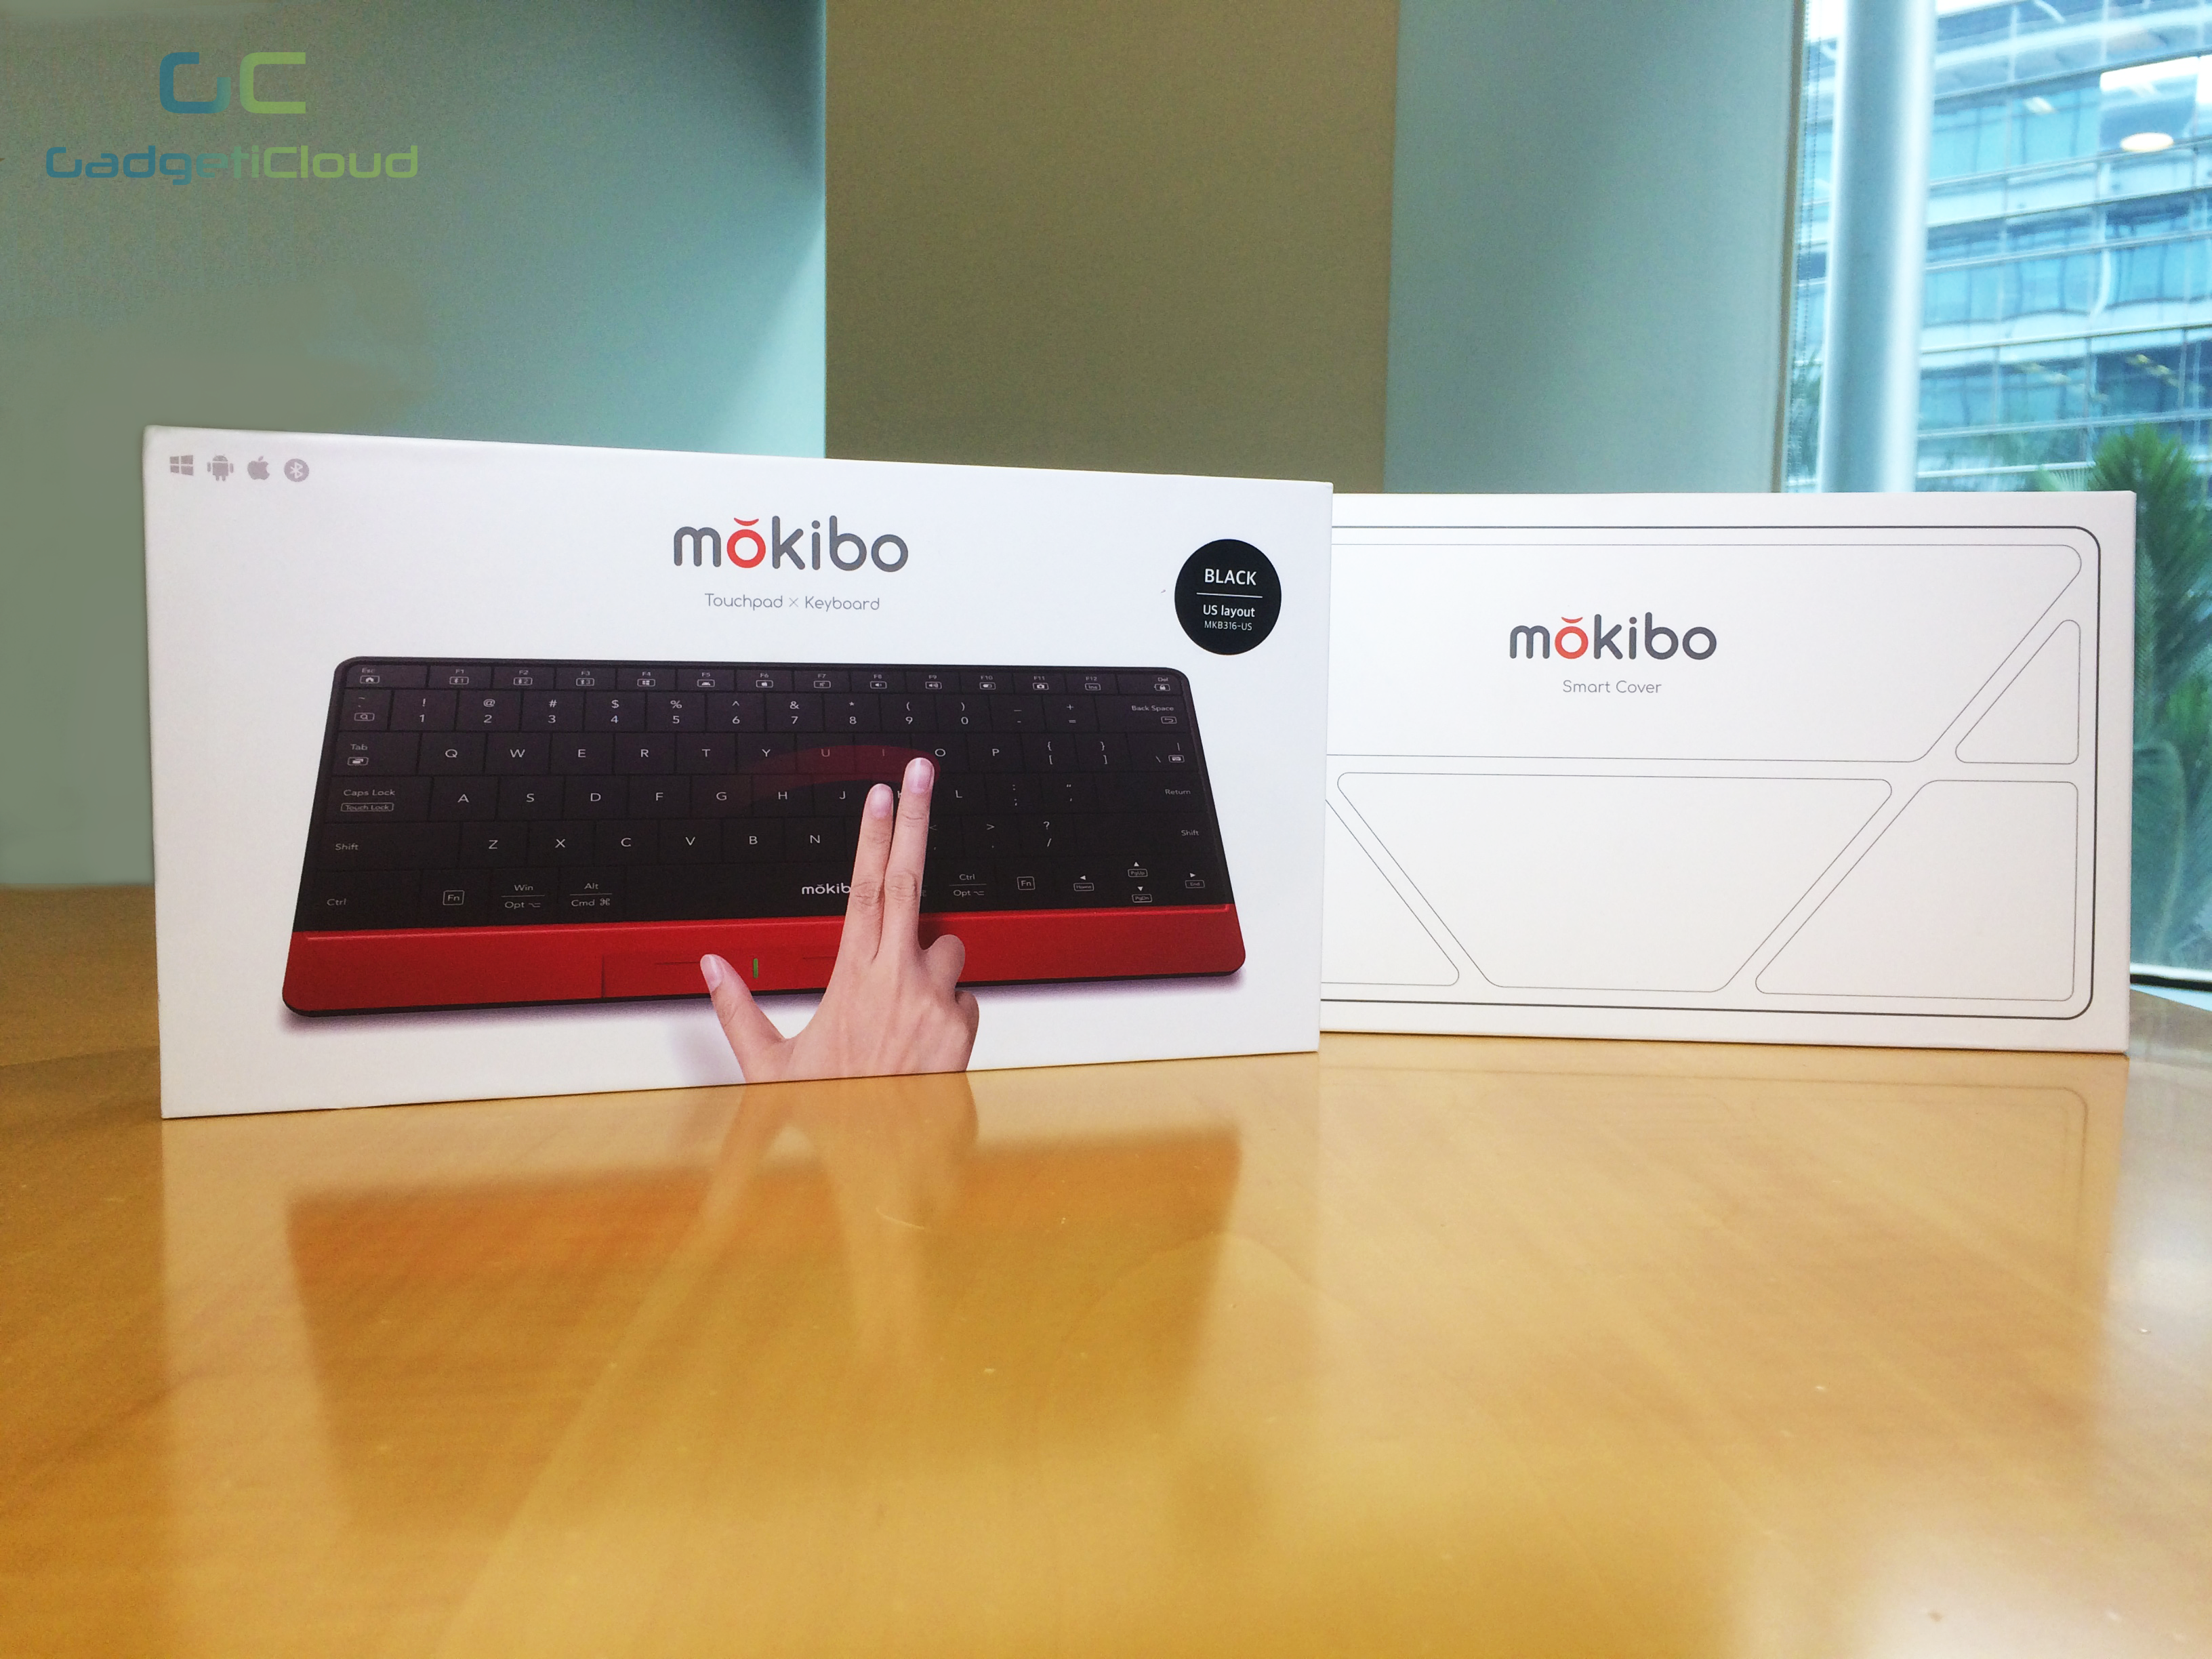 lexuma-mokibo-touchpad-keyboard-bluetooth-wireless-pantograph-laptop-packaging